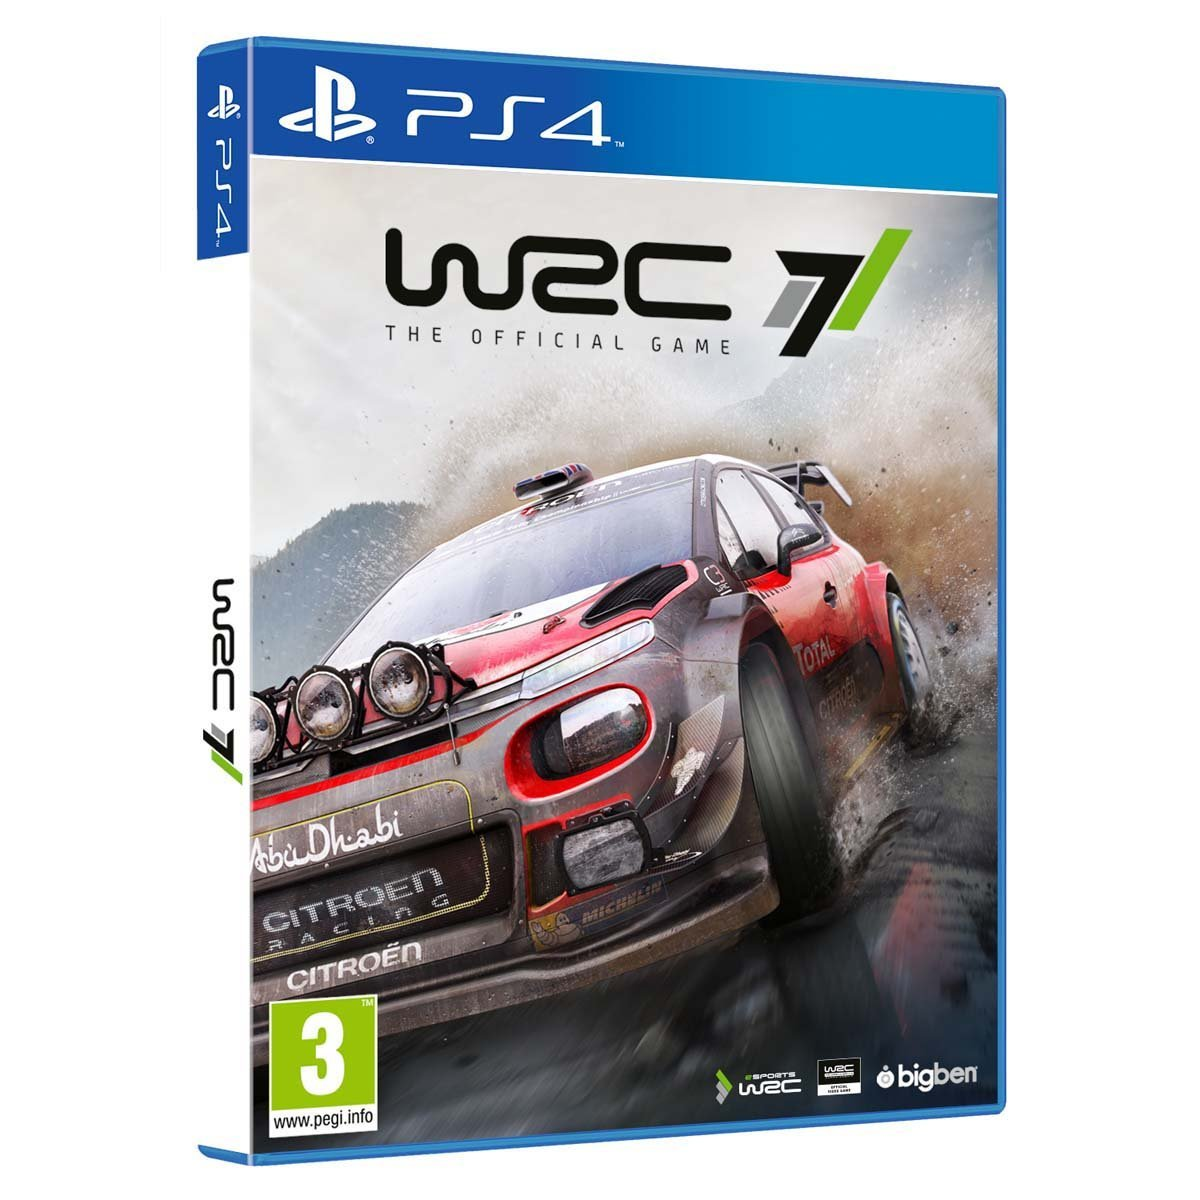 test de wrc 7 ps4 xbox one pc page 1 gamalive. Black Bedroom Furniture Sets. Home Design Ideas